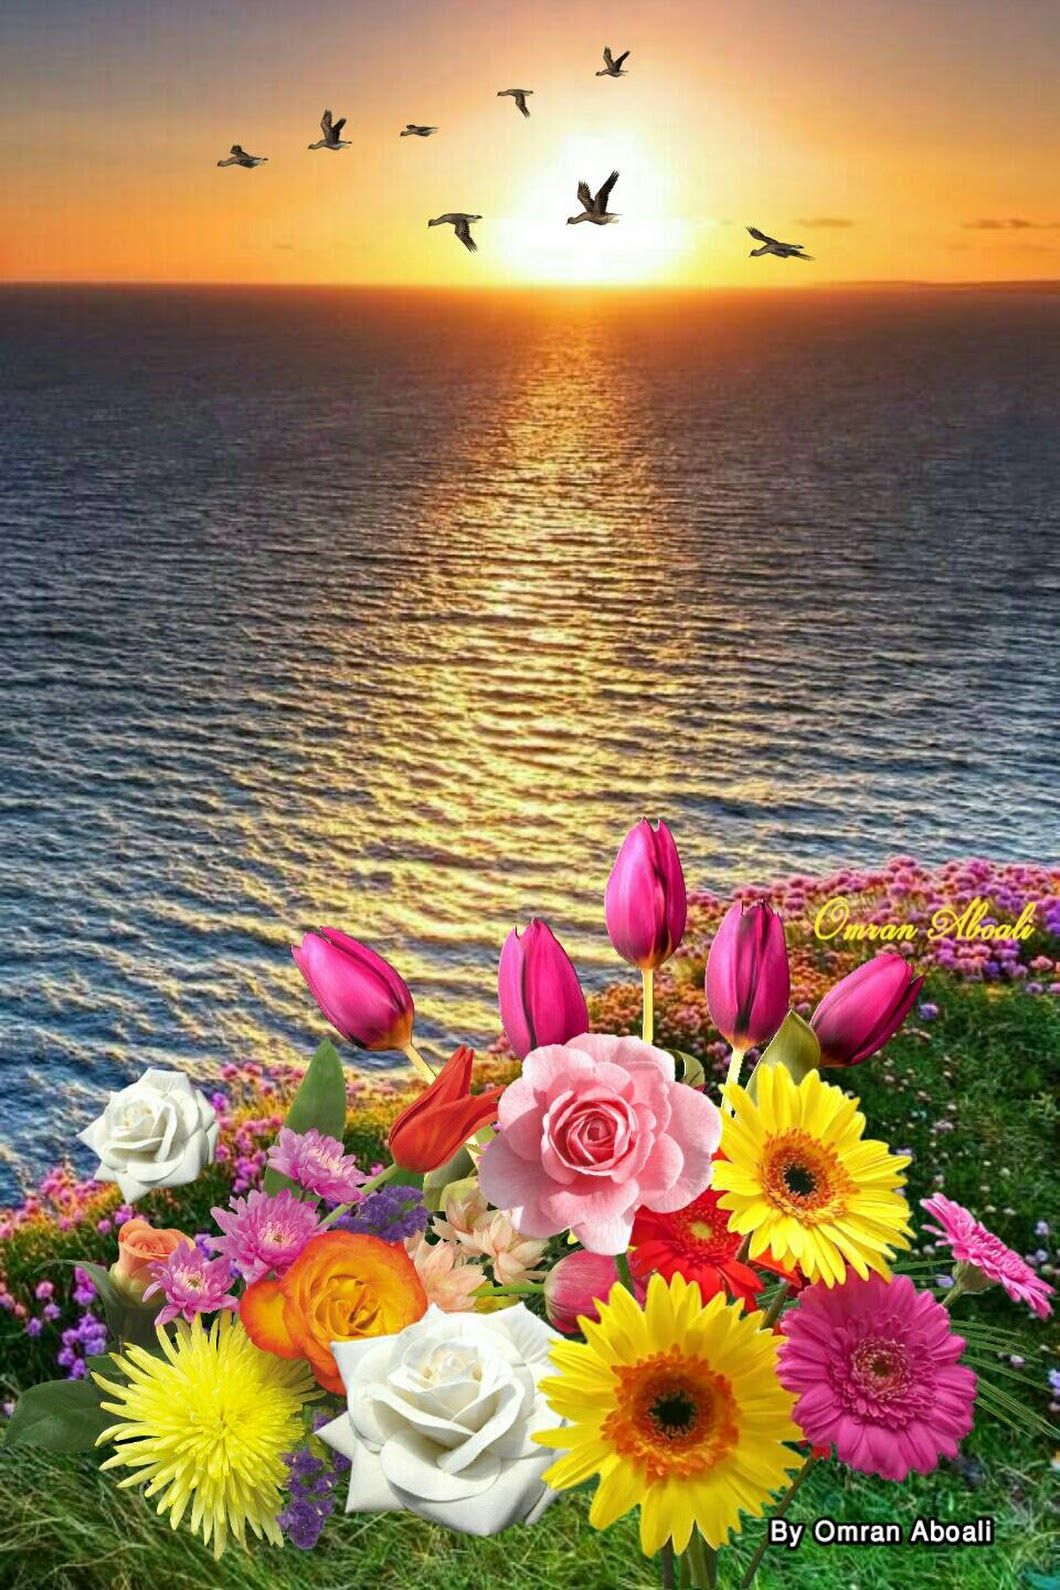 By Omran Aboali - google+ | Paisagens | Flowers, Nature photography, Beautiful flowers